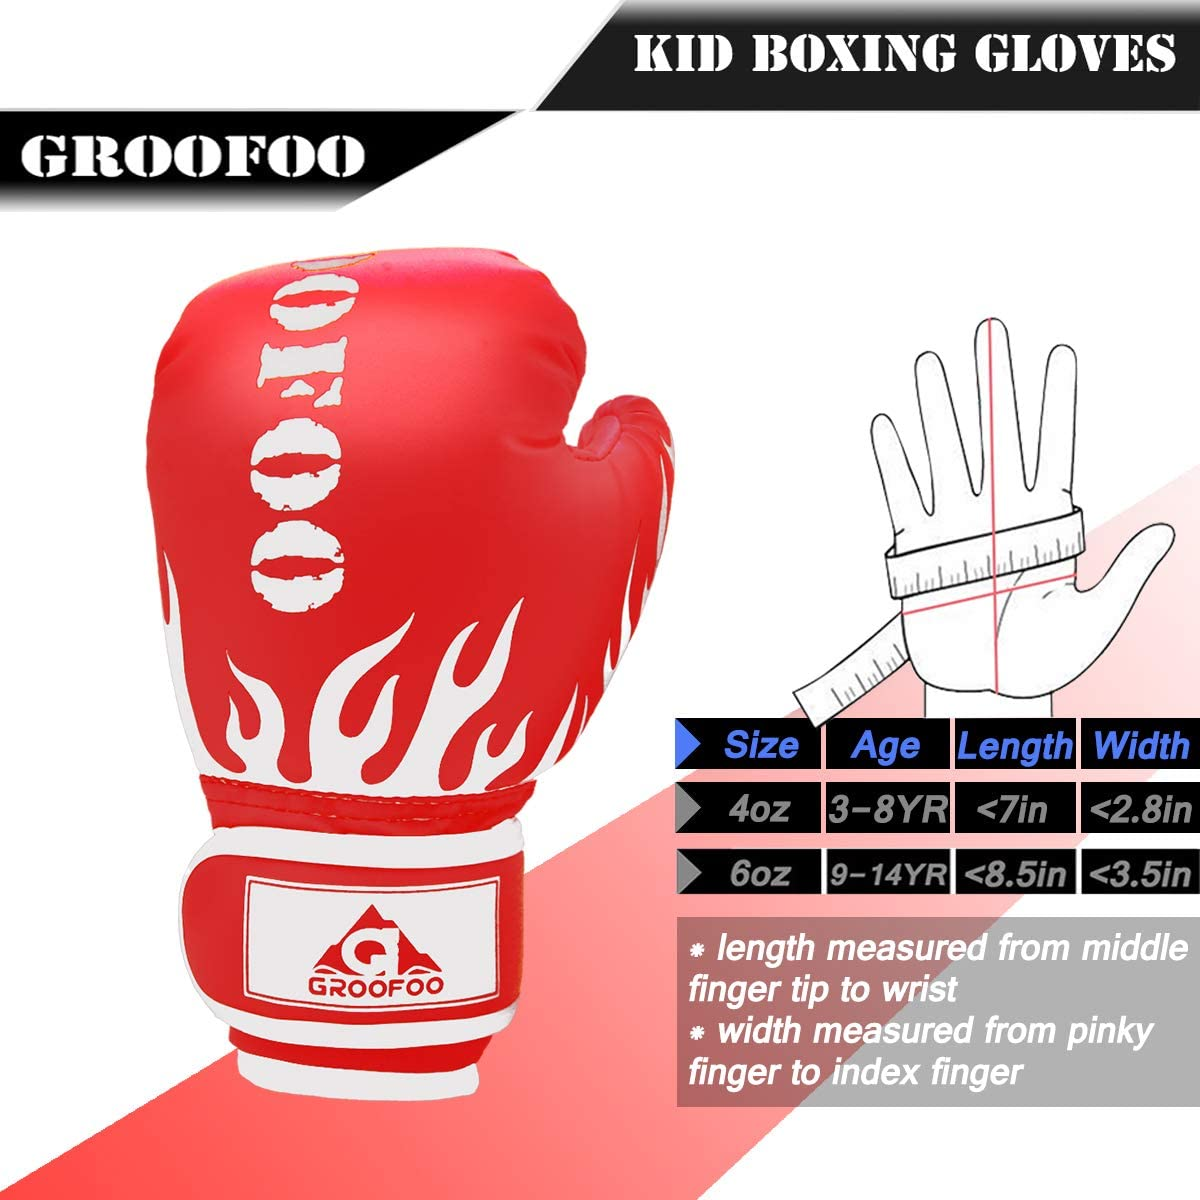 GROOFOO Kids Boxing Gloves for Child Punching Bag Sparring 4oz 6oz fit 3 to 14 Years